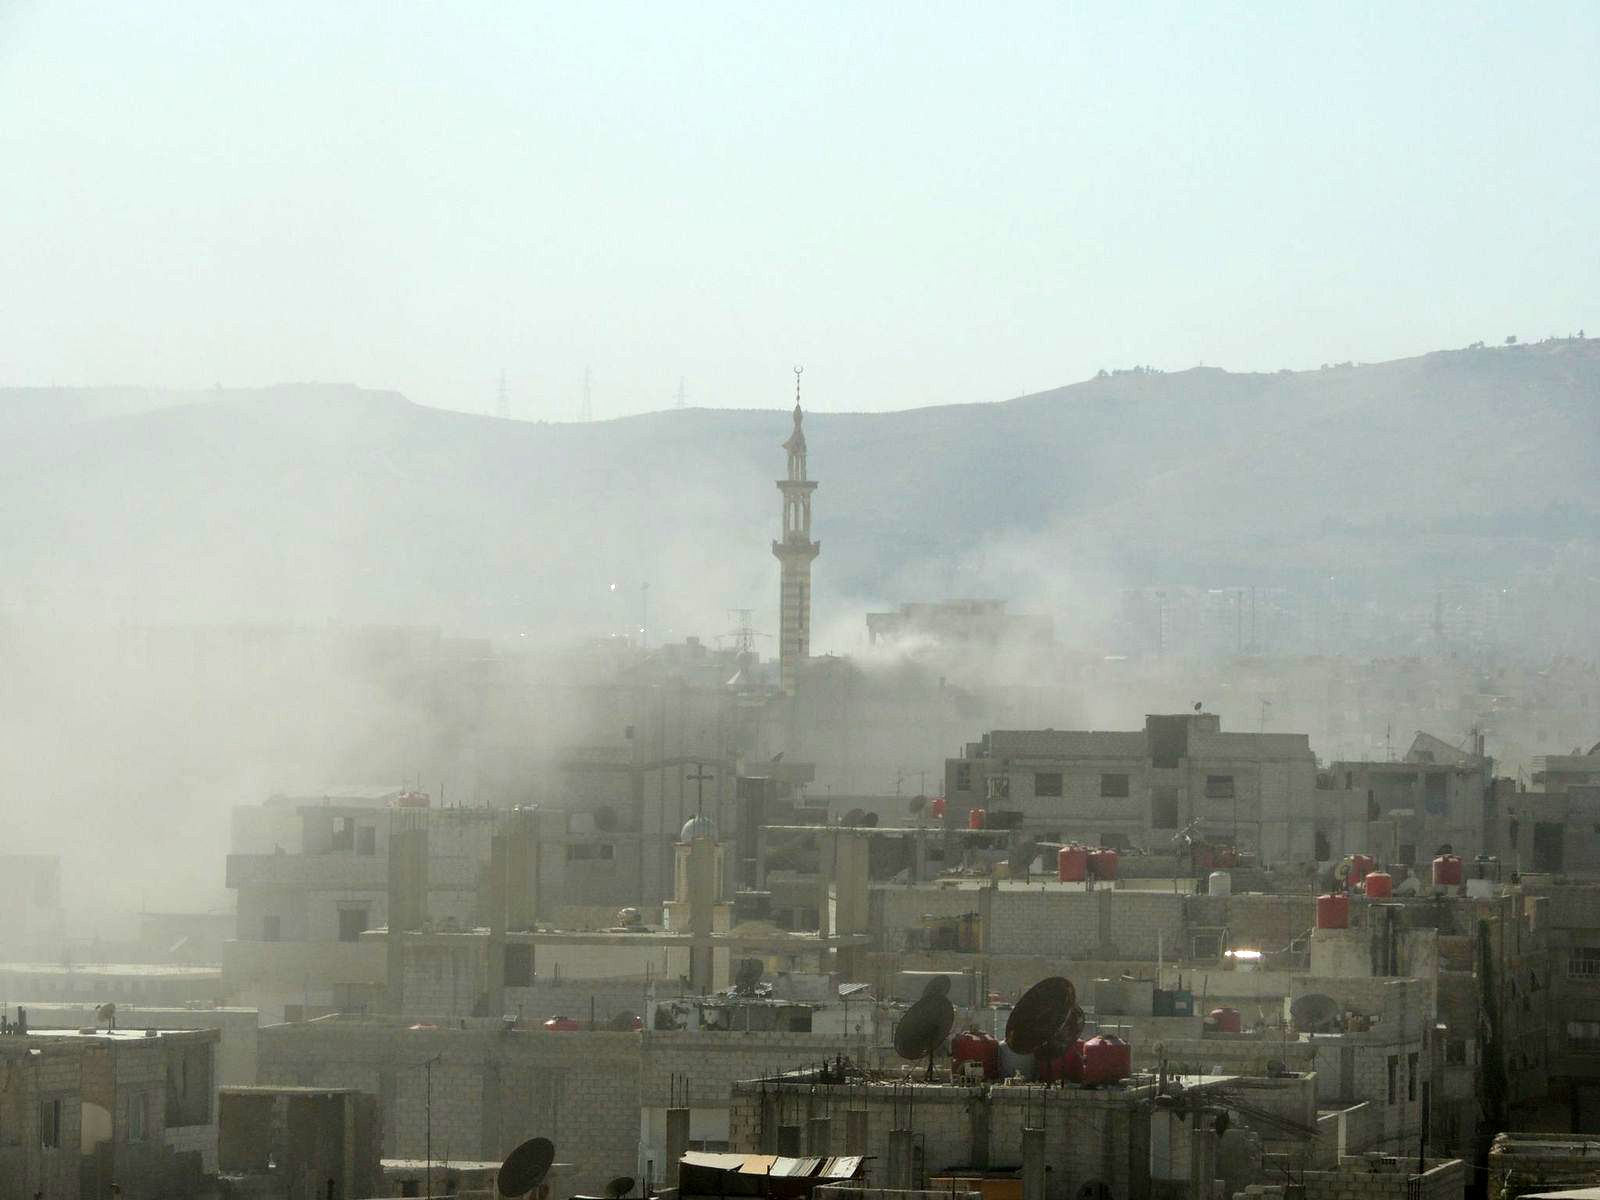 Syrien/ Giftgas-Angriff/ Ghouta